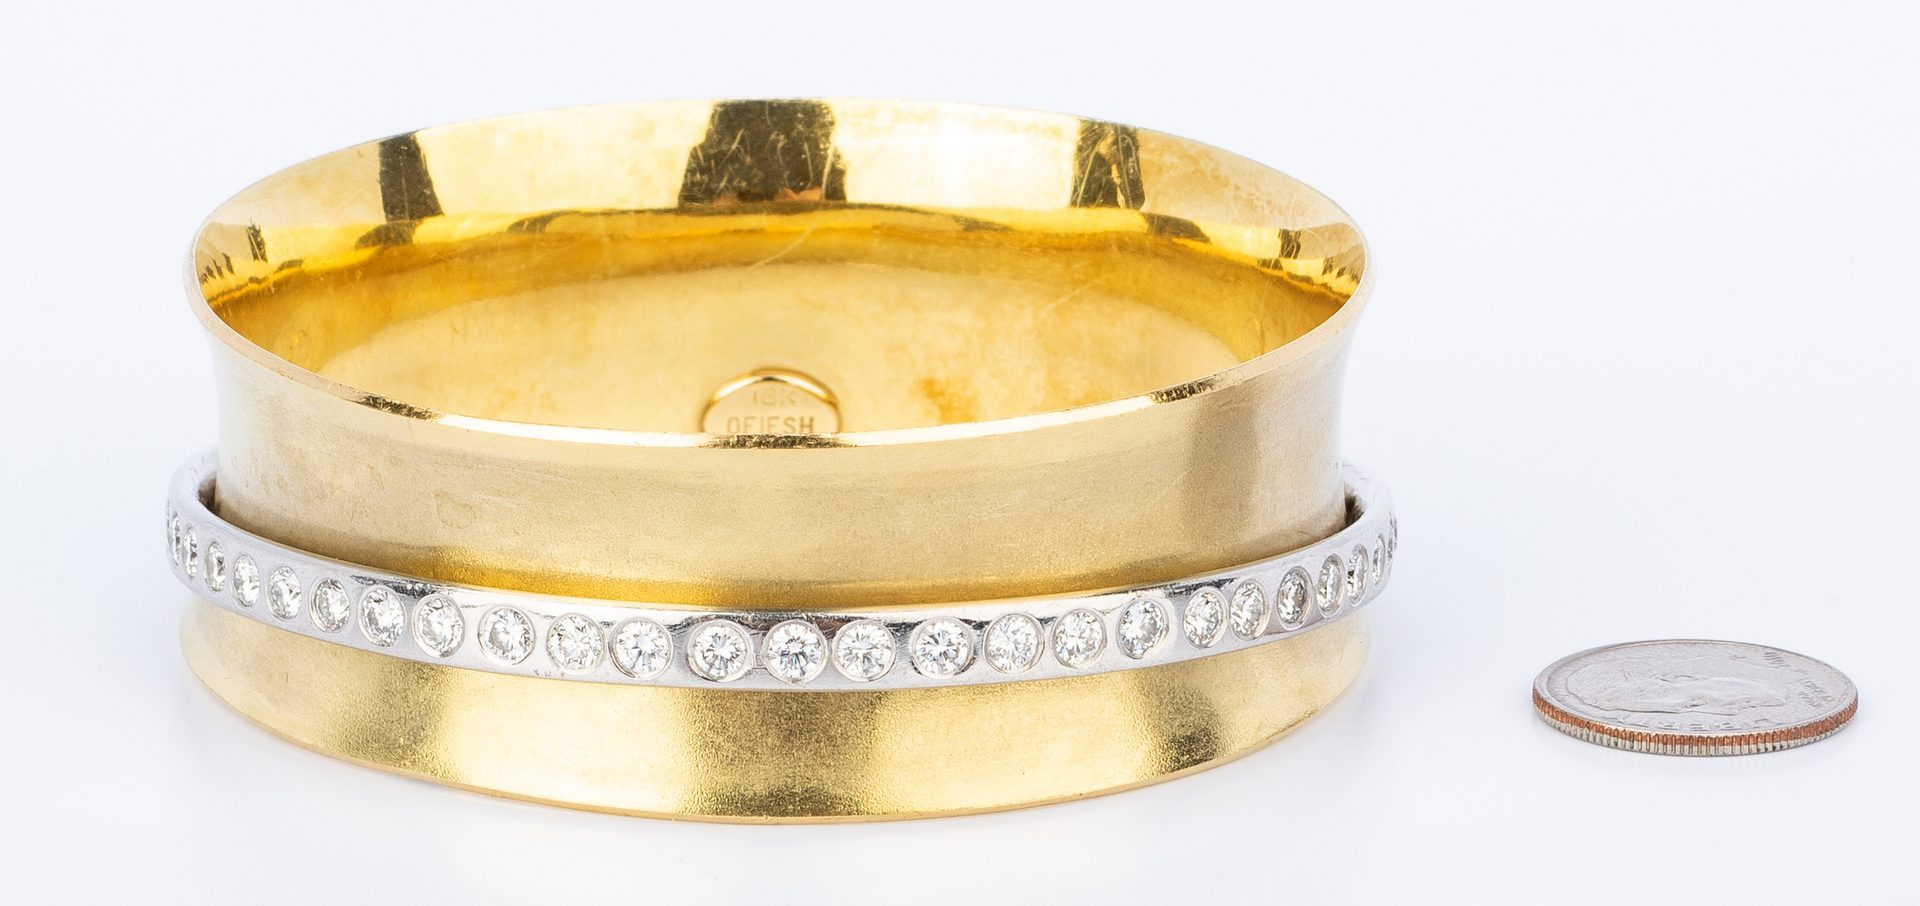 Lot 39: 18K Ofiesh Platinum Diamond Bangle